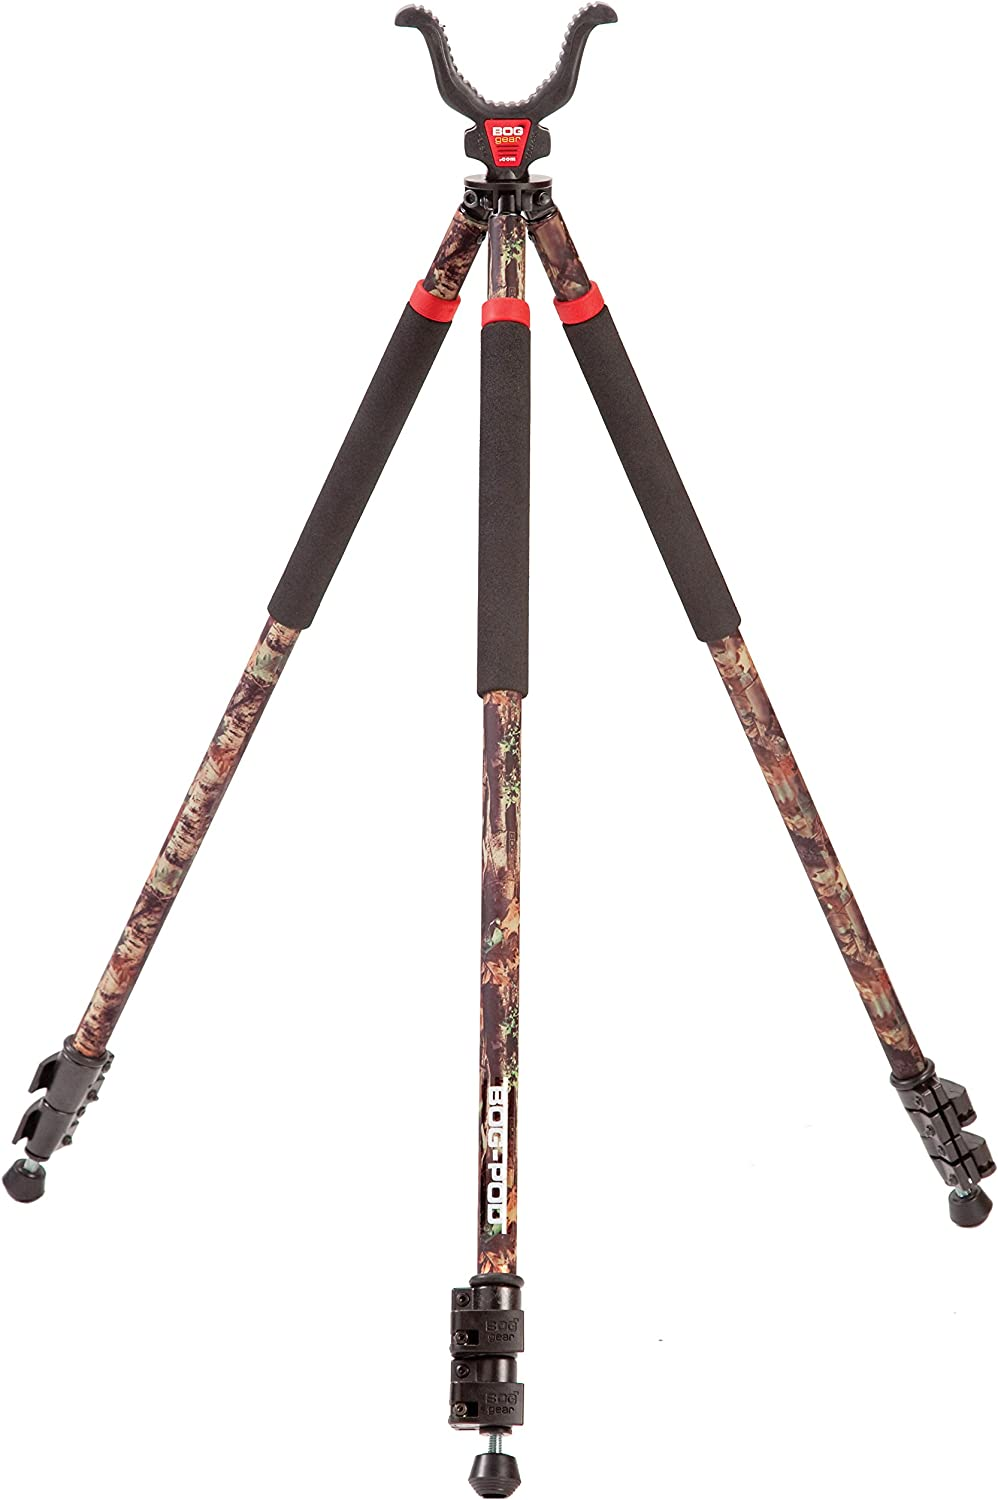 BOG-POD CLD-3 Shooting Camo Tall Tripod : Gun Monopods Bipods And Accessories : Sports & Outdoors